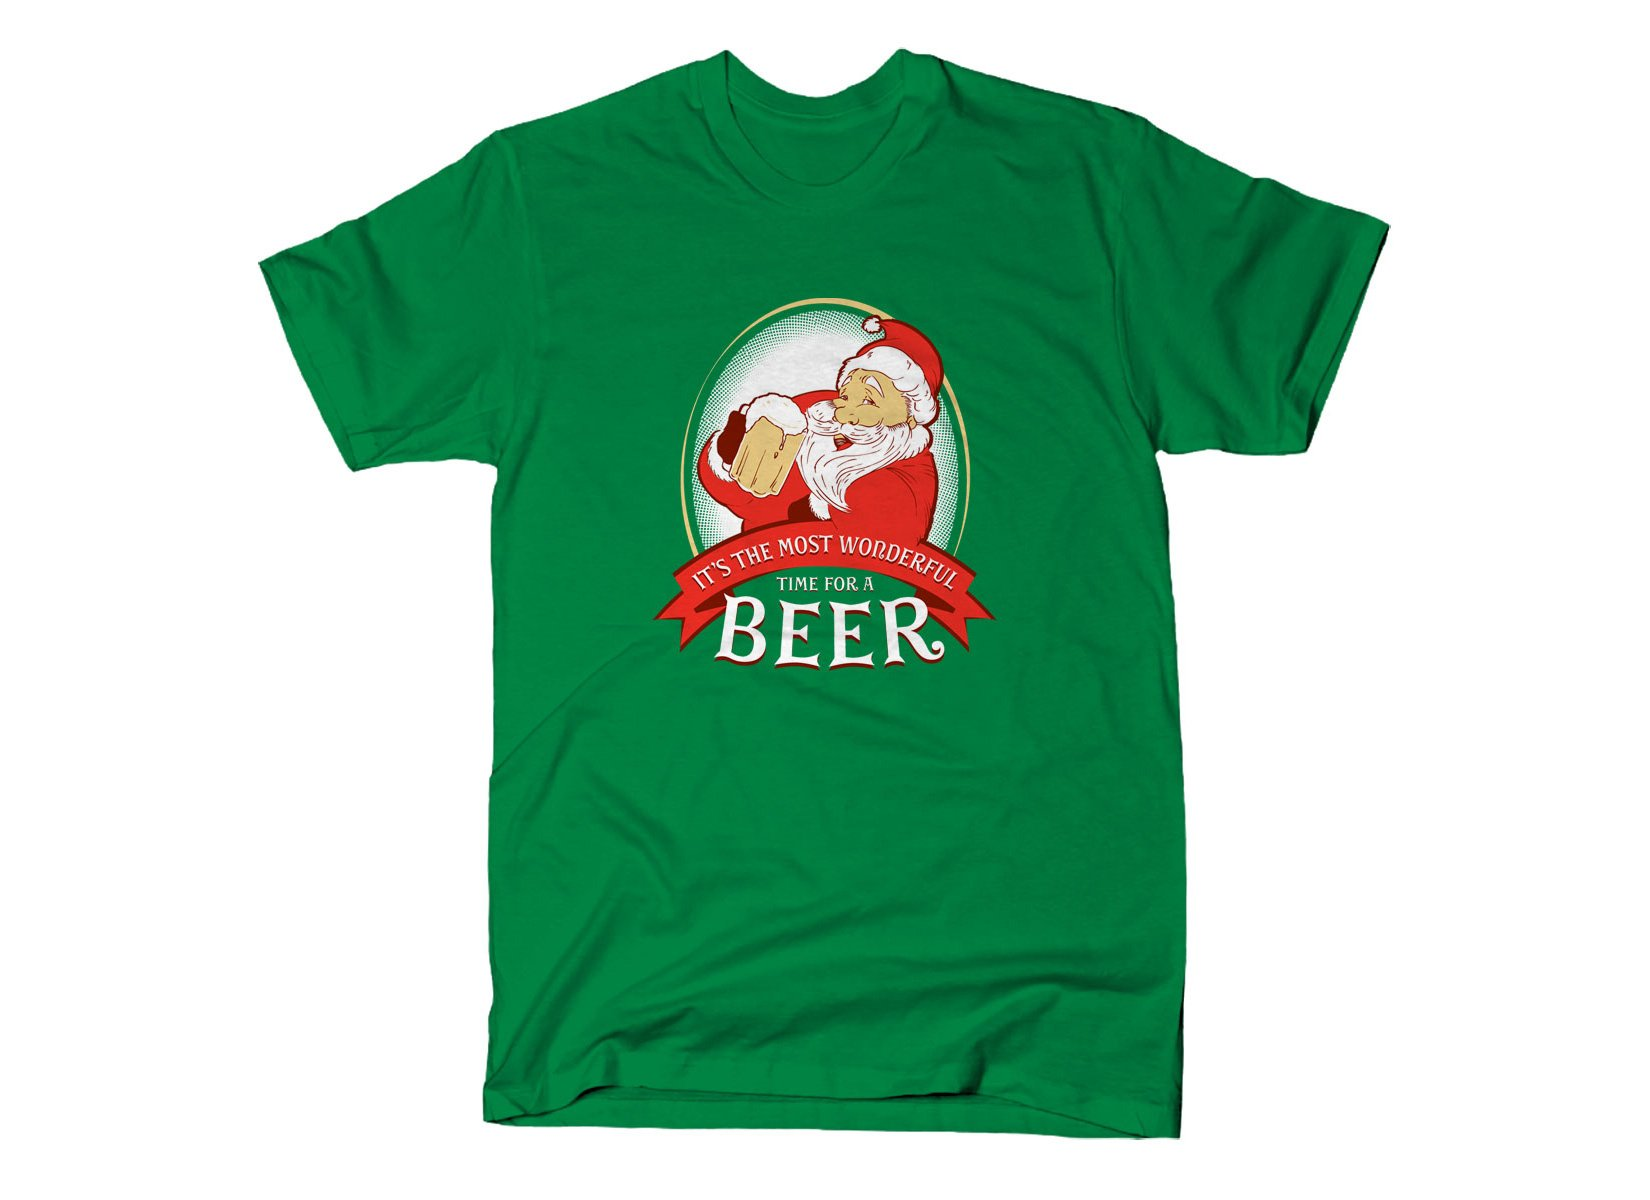 It's The Most Wonderful Time For A Beer on Mens T-Shirt